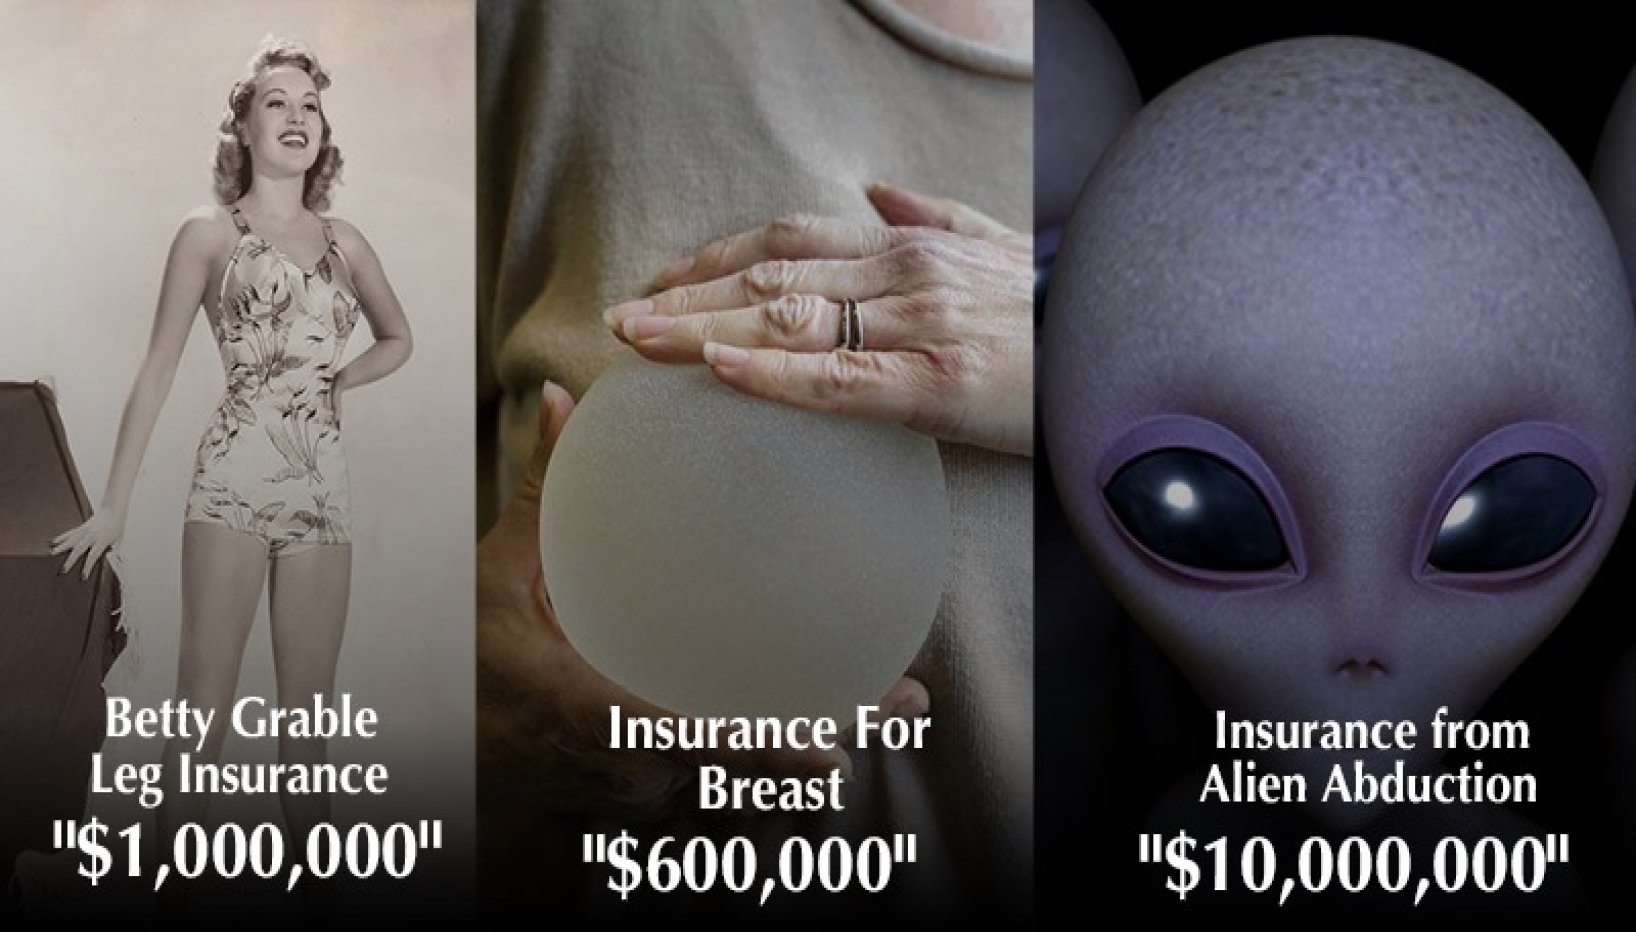 8 Of The Weirdest Things That People Have Insured